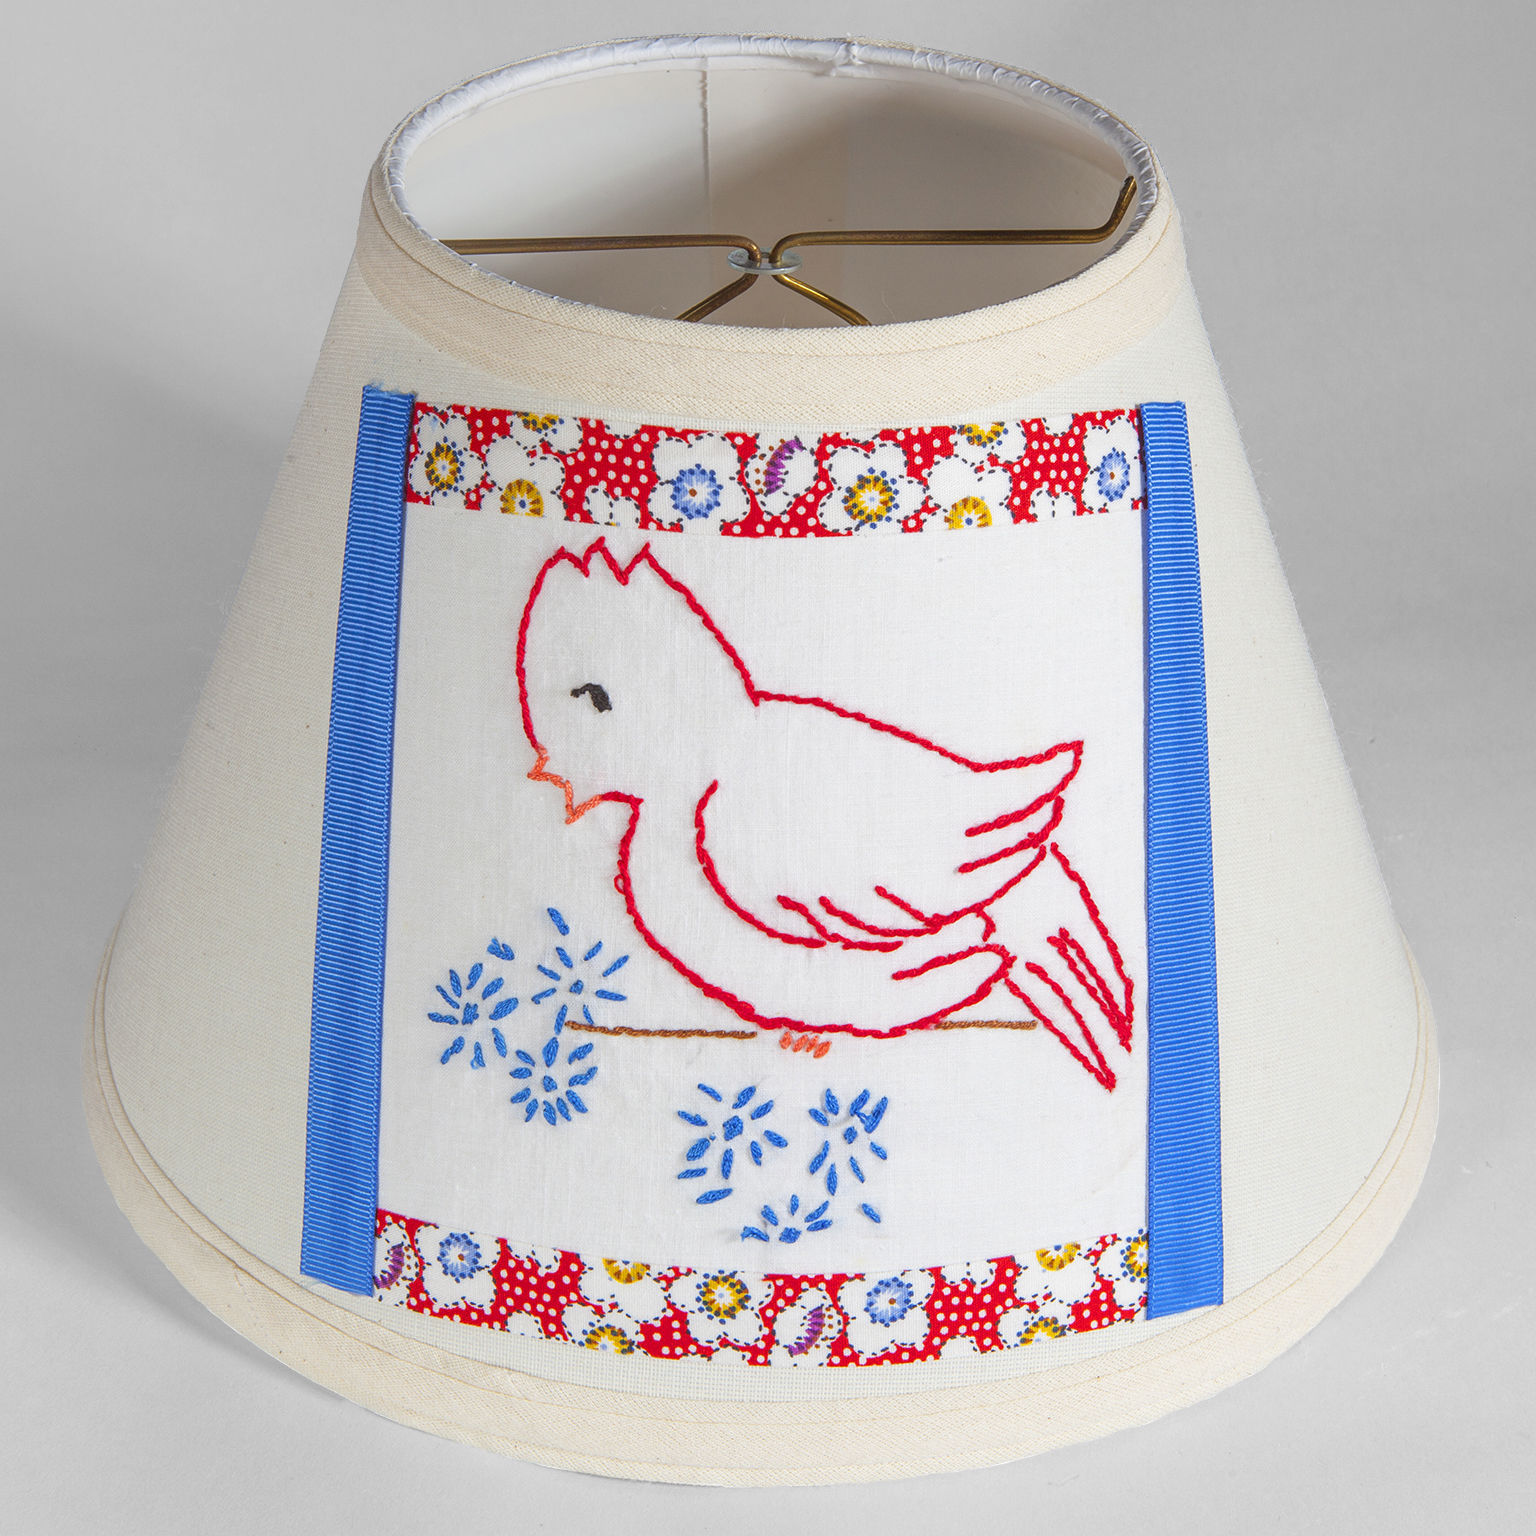 Vintage Hand Embroidered Red Bird Quilt Fabric on New Lamp Shade - Free Ship